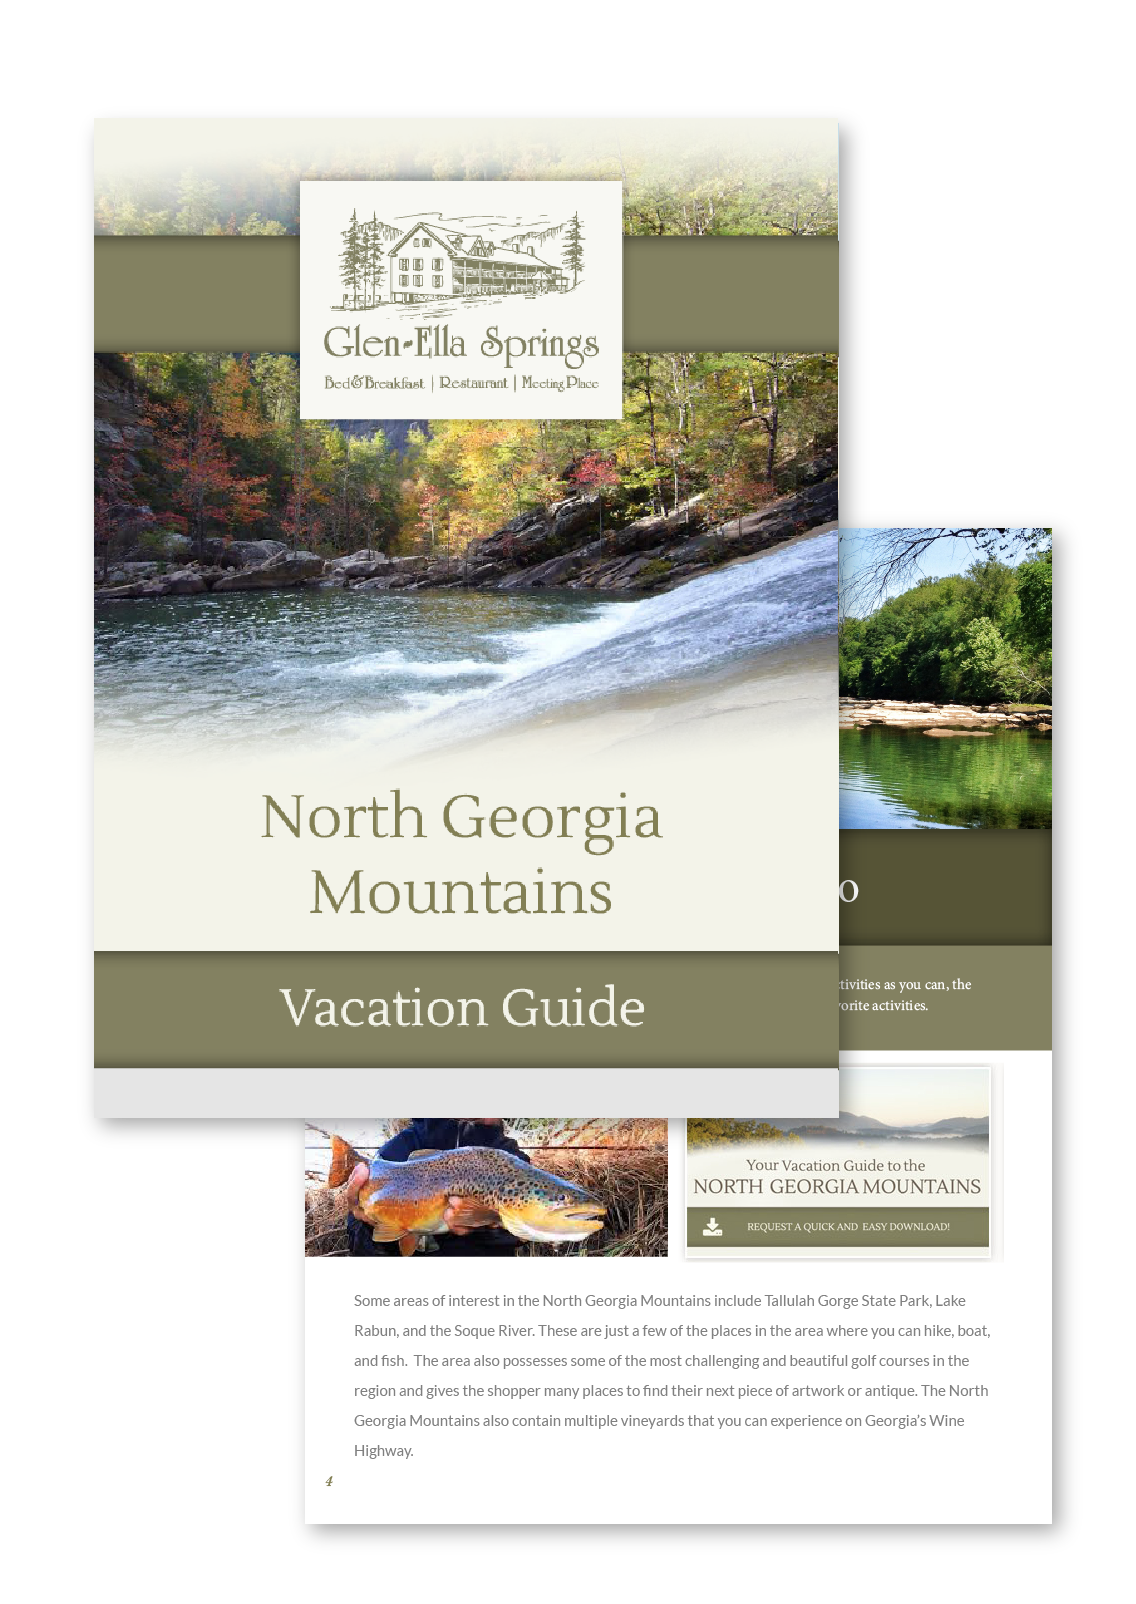 Request your North Georgia Mountains Vacation Guide